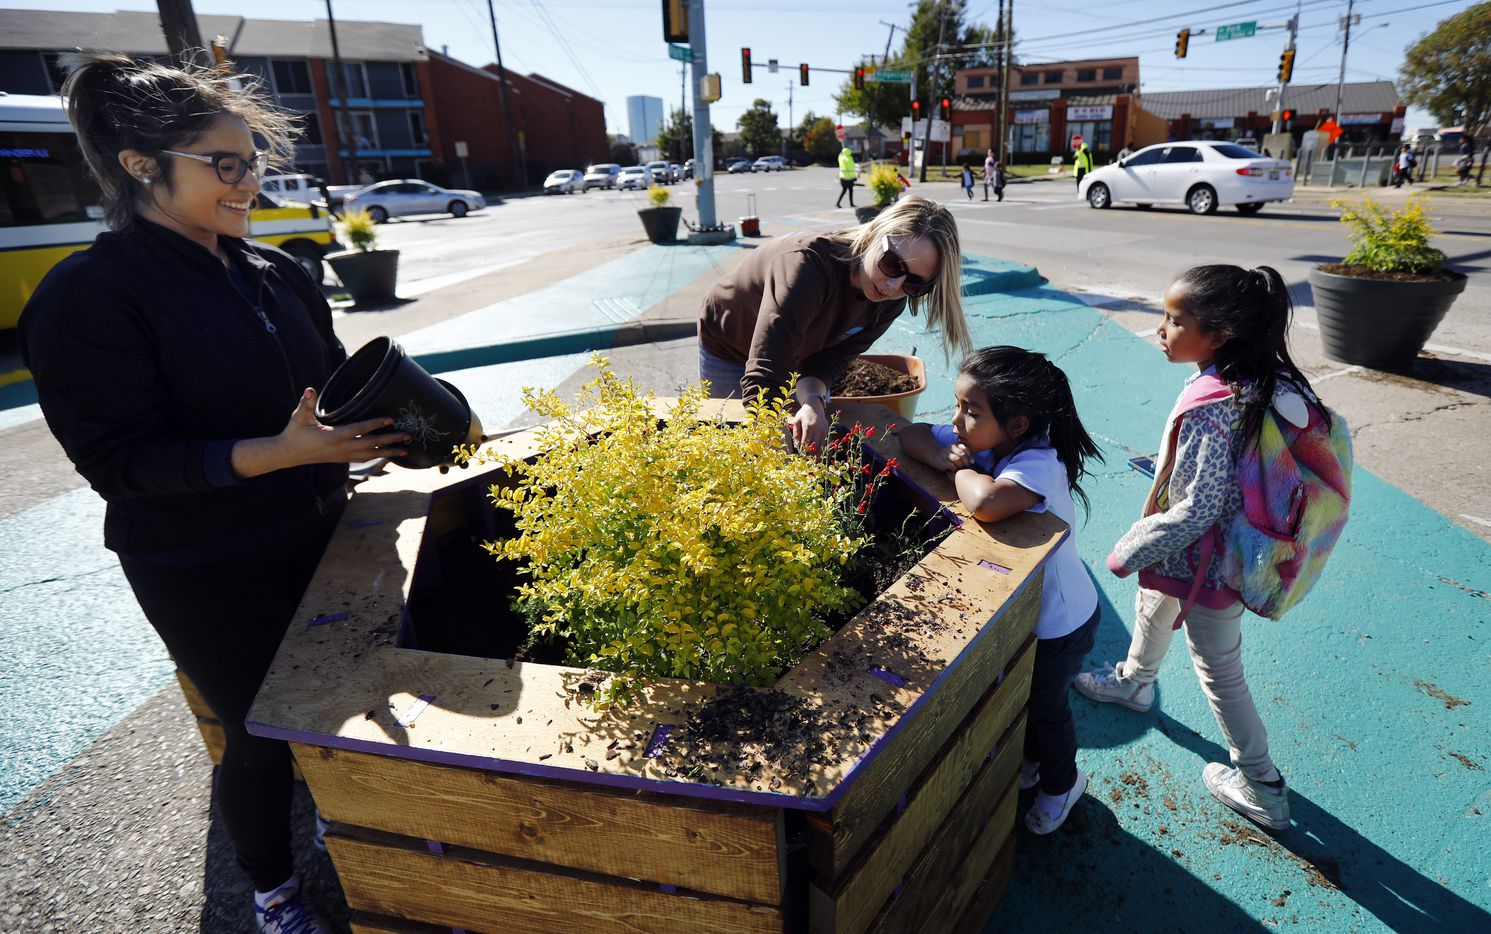 Better Block volunteers Rebecca Castillo (left) and Myria Boehm show children from Jack Lowe Sr. Elementary School the new plants they are filling pots with at the Five Points street intersection in the Vickery Meadow area of Dallas, Friday, November 1, 2019. Improvements include adding a plaza, potted trees a pop-up container store, stage, swings and colorful walkways to beautify the neighborhood. The goal is to reduce crime through improving the environment.